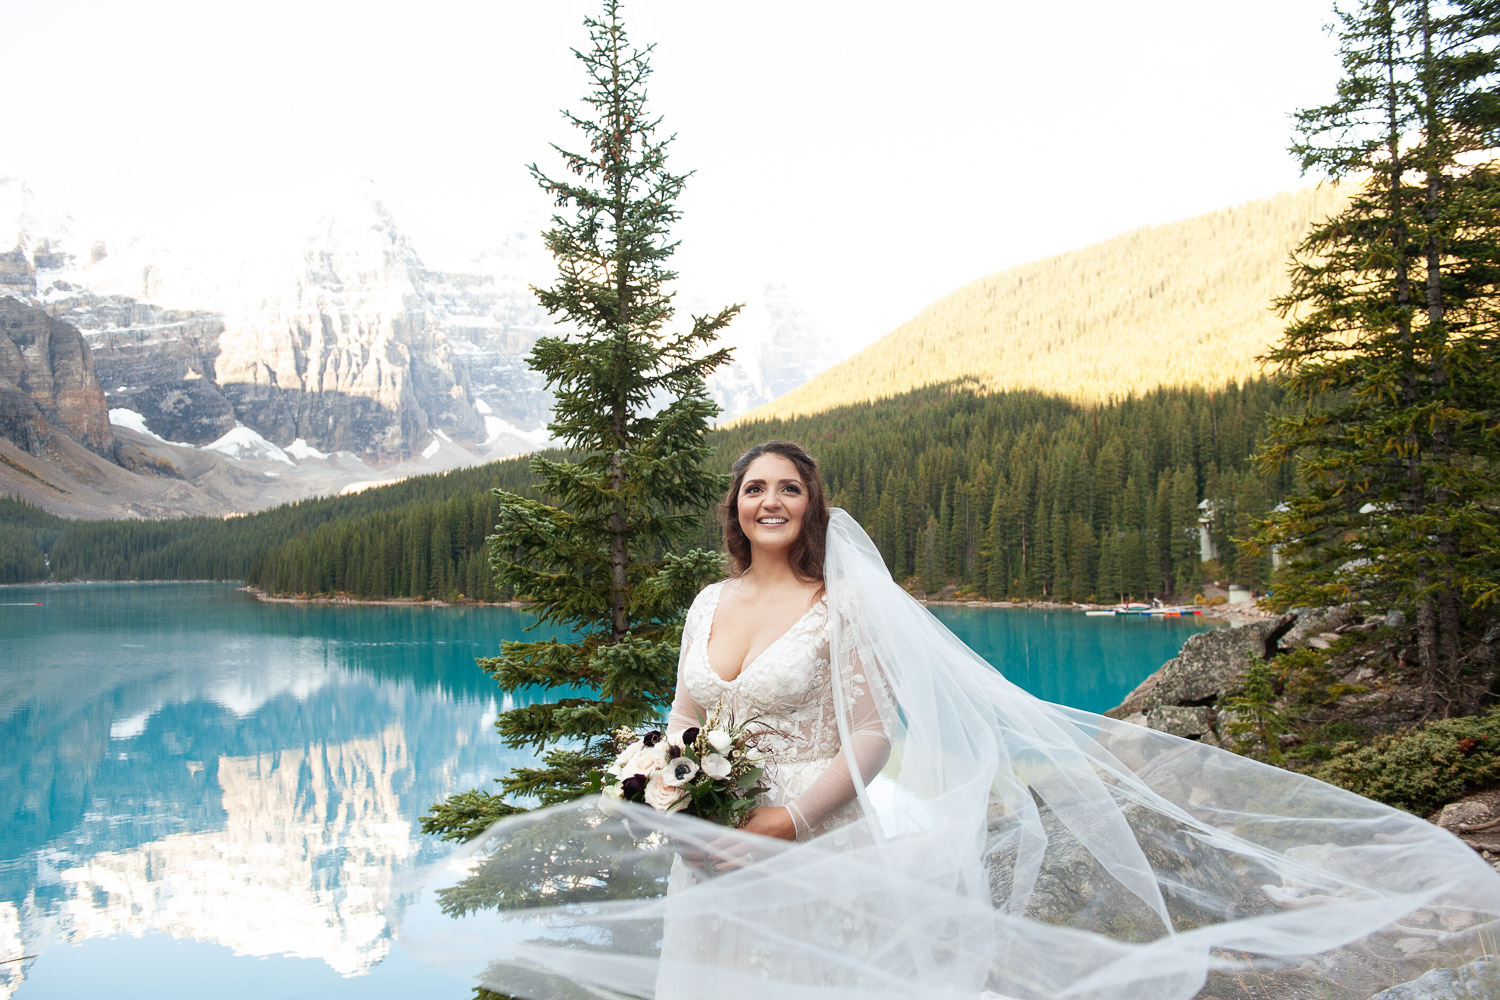 bride's veil blowing in the wind at Moraine Lake captured by Tara Whittaker Photography